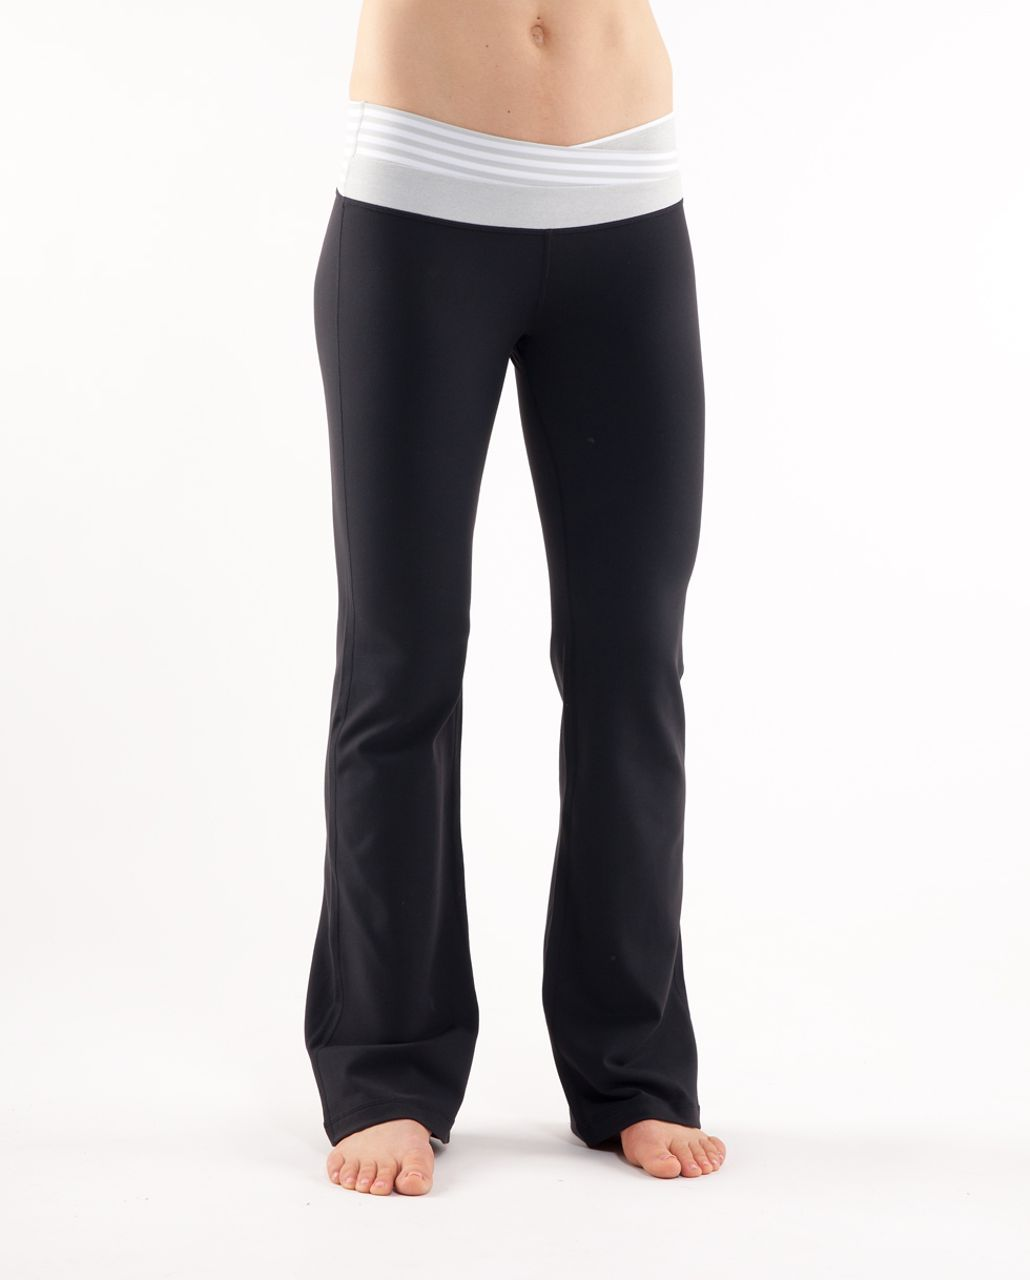 Lululemon Astro Pant (Tall) - Black /  White Silver Spoon Wide Bold Multi Stripe /  Silver Spoon White Narrow Bold Mul